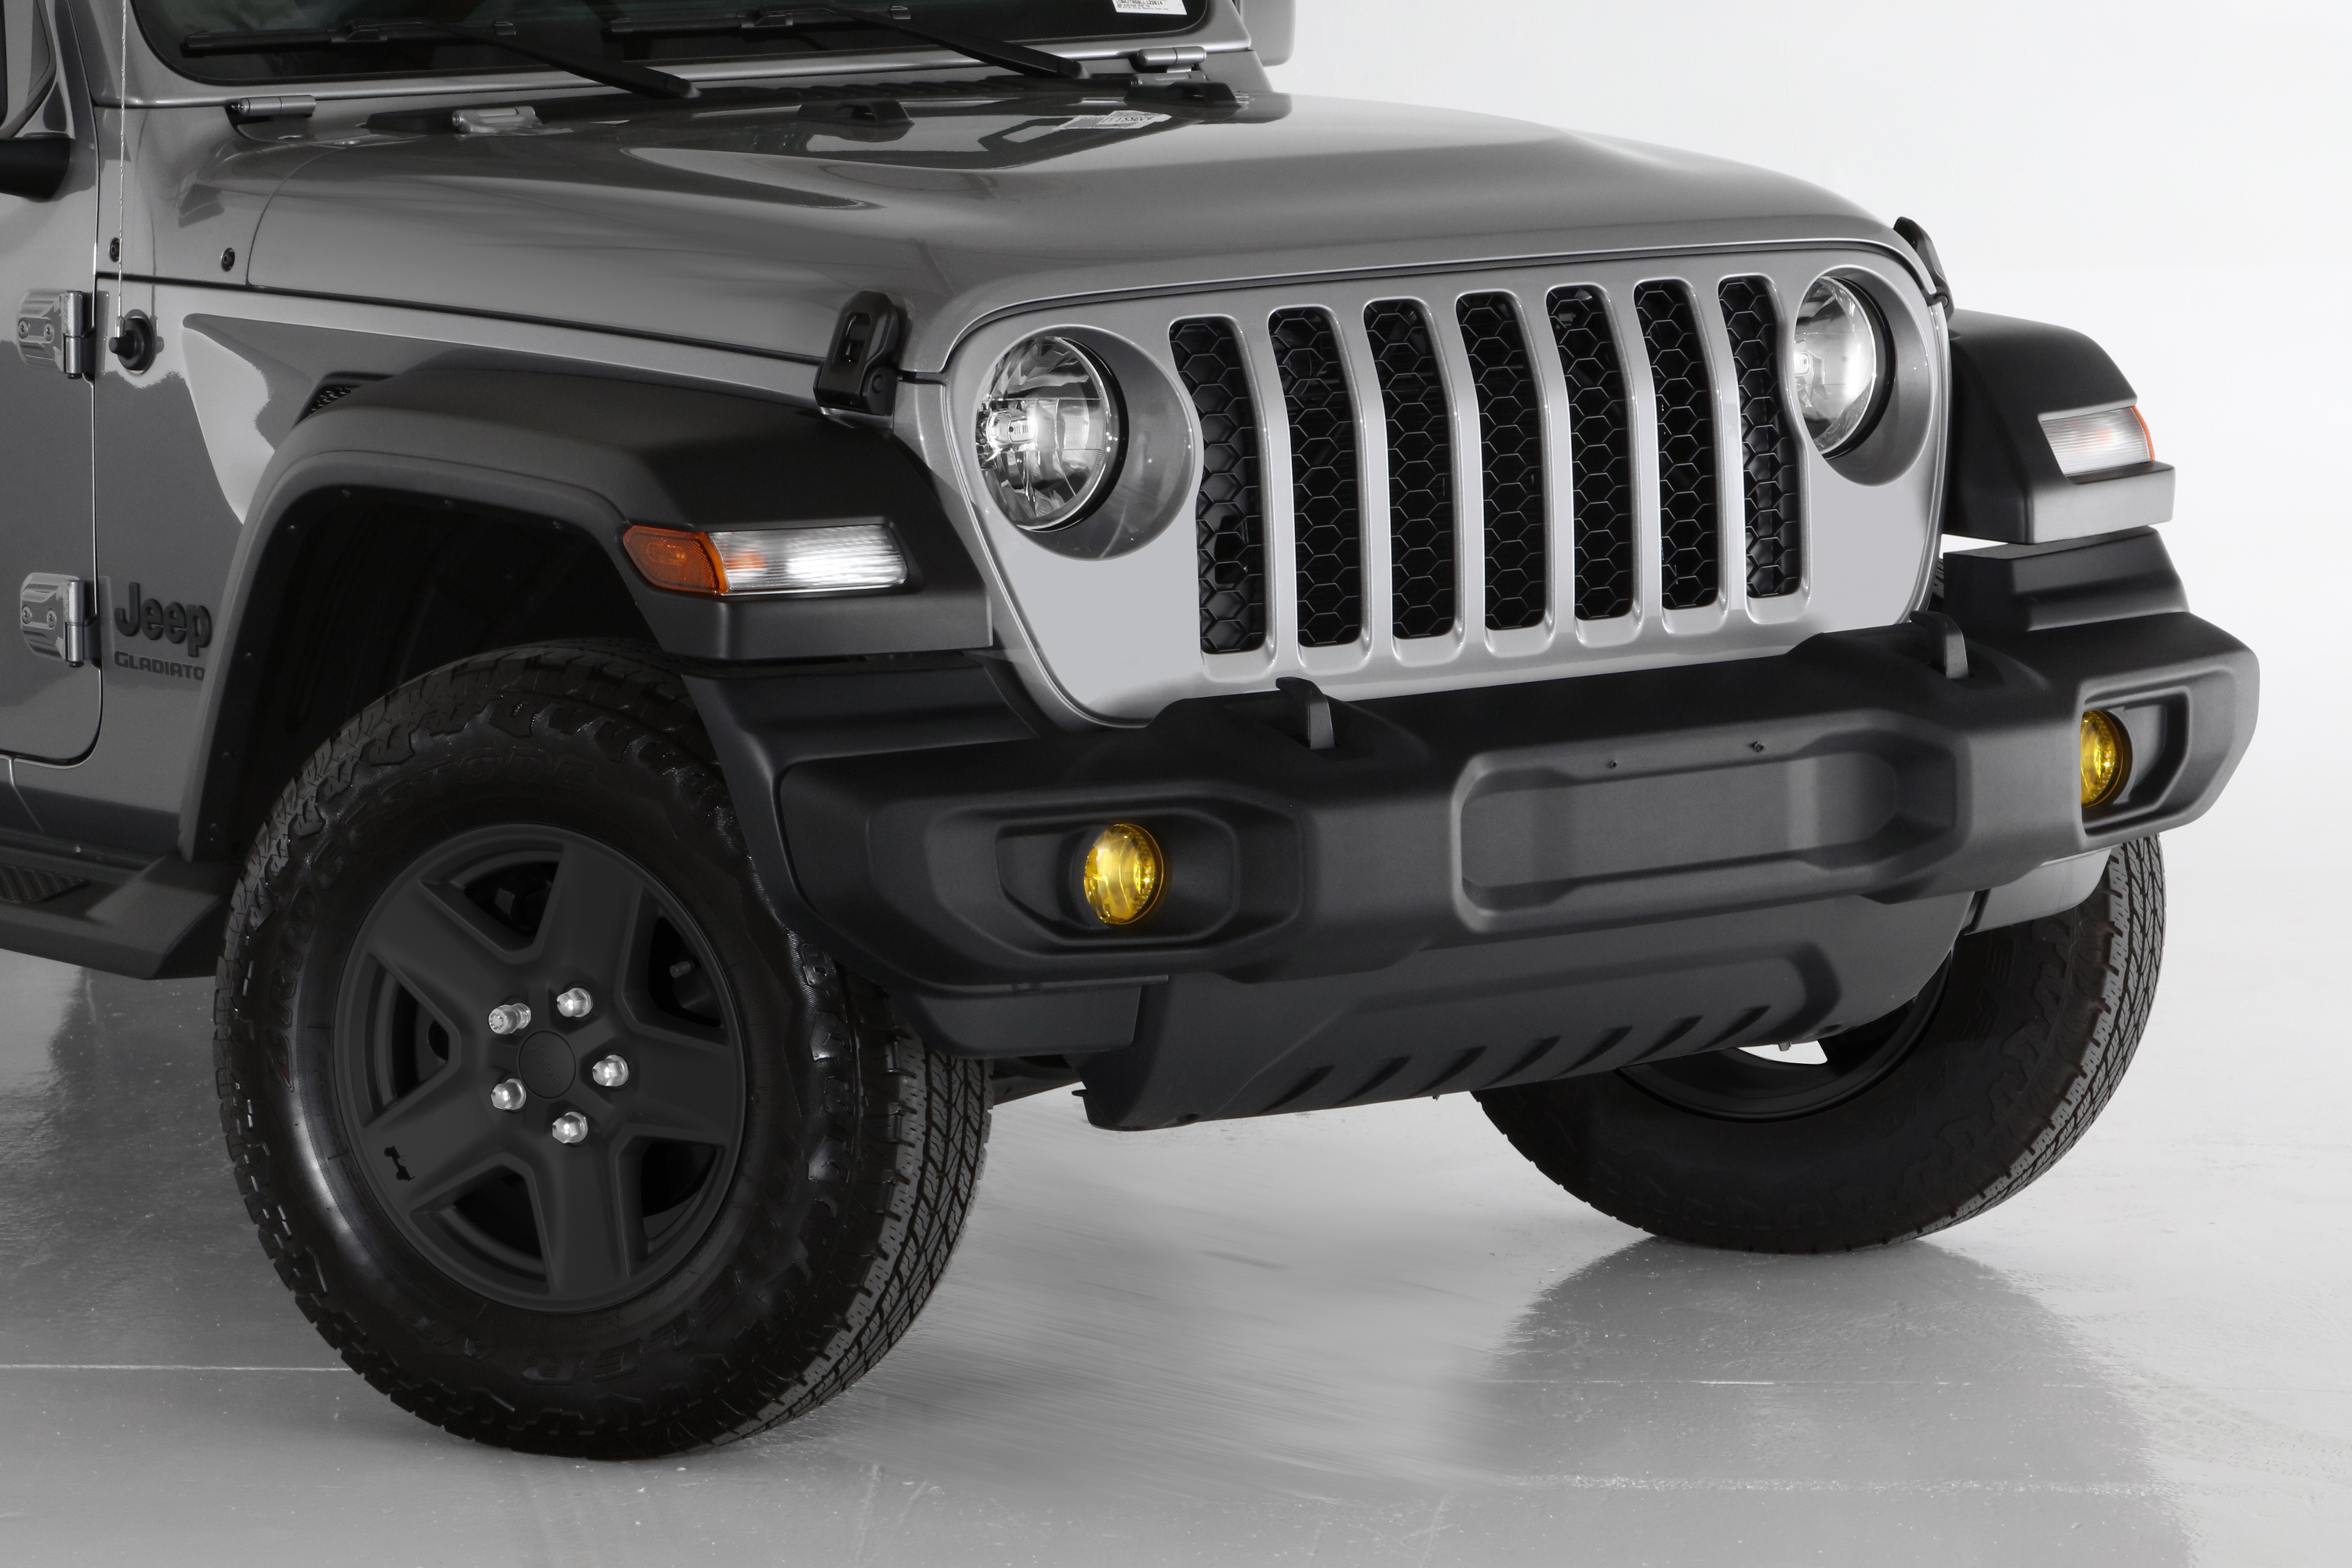 For Jeep Gladiator 2020 GTS GT4745S Blackouts Smoke Tail Light Covers